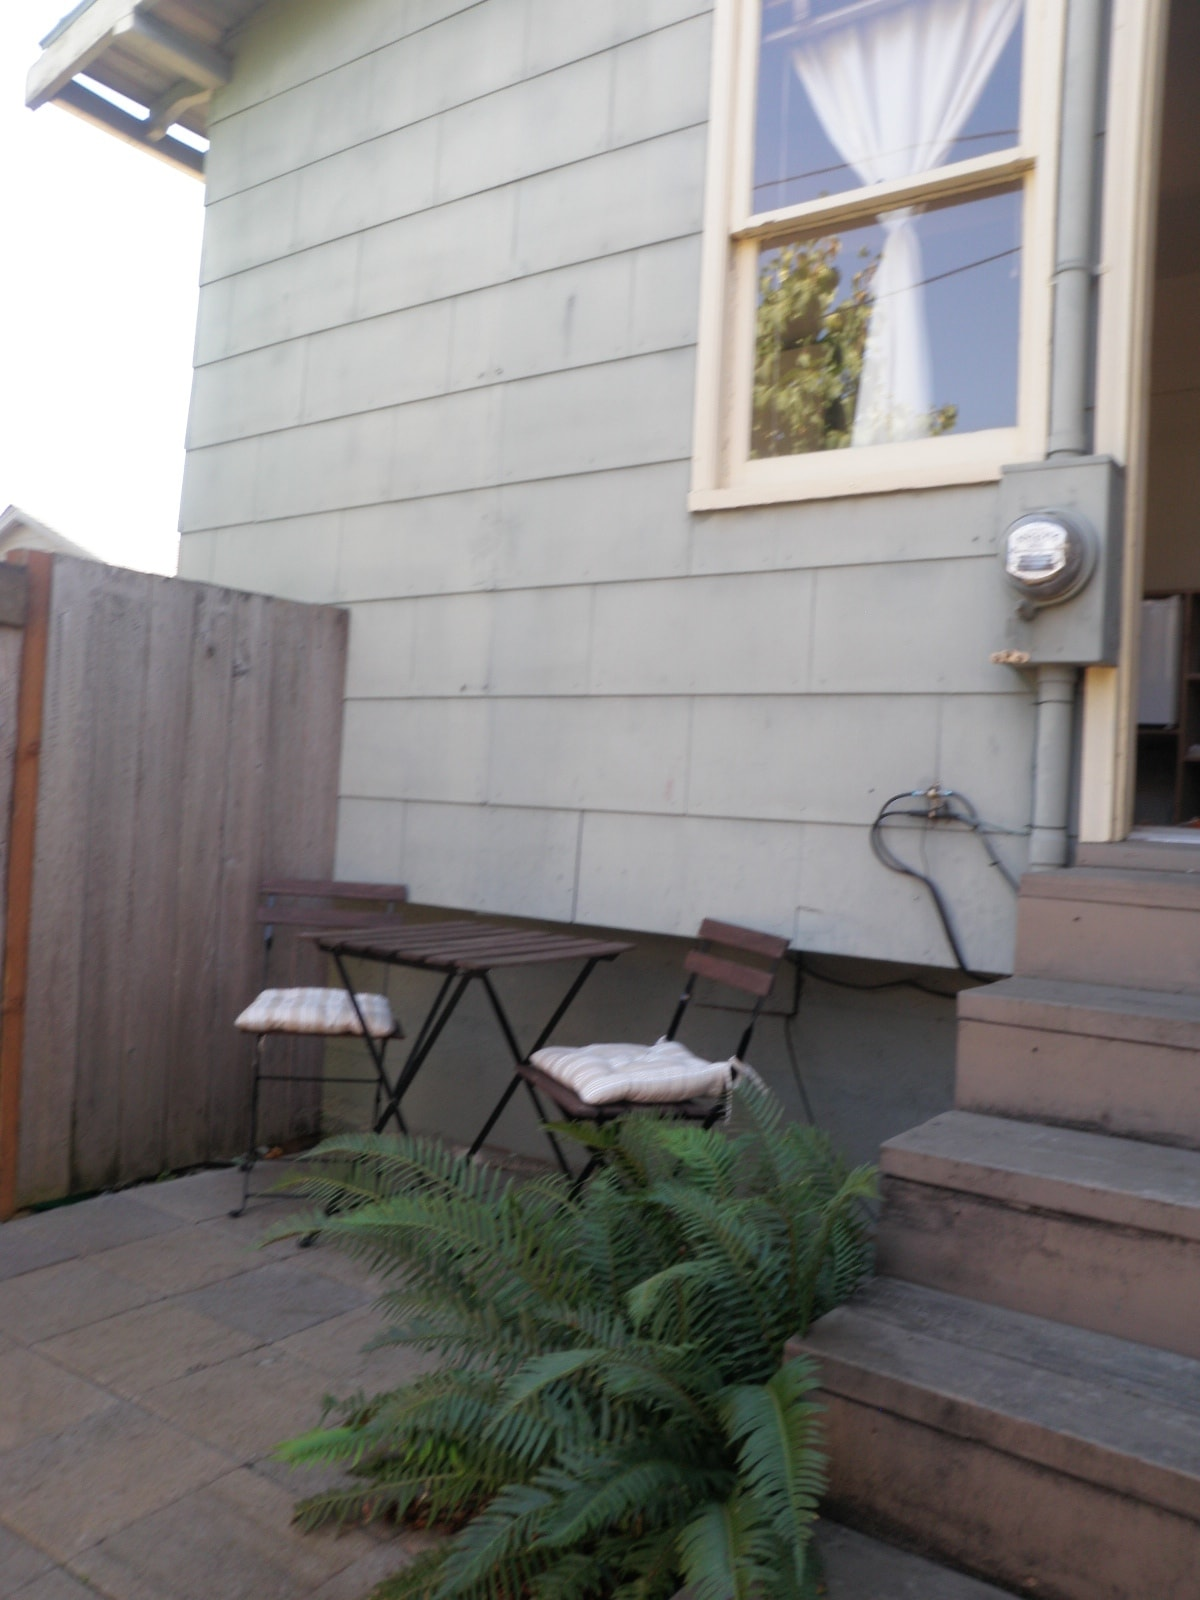 Private patio and entrance. Also room for bikes in enclosed patio.